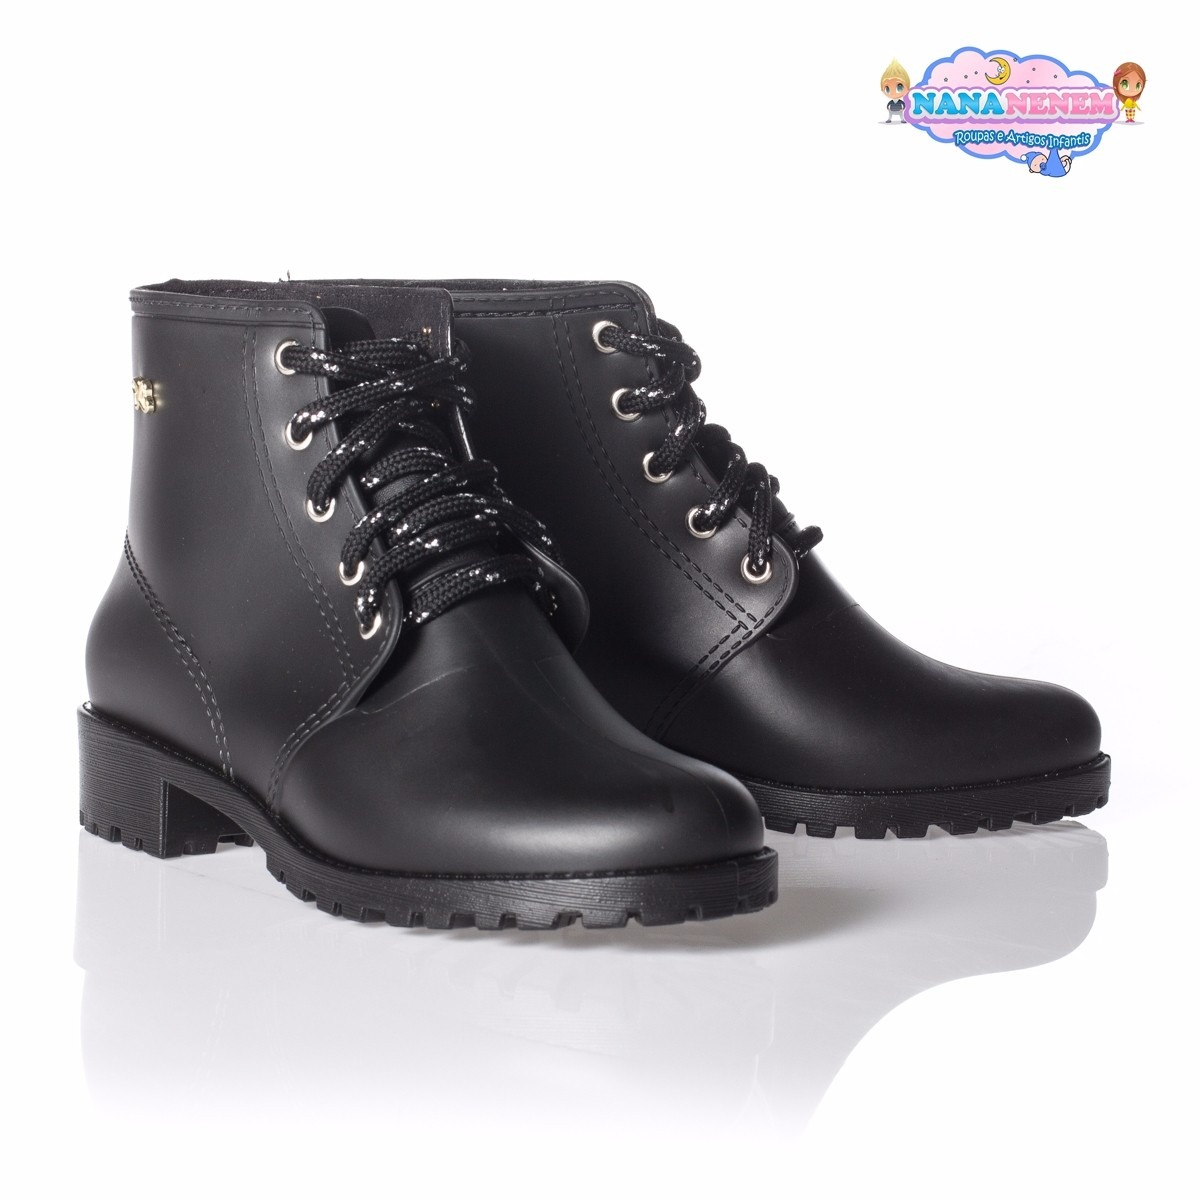 d9cbaa7d37 Bota Coturno World Colors Lali Preto Imperdivel Cód: 454 - R$ 69,90 ...